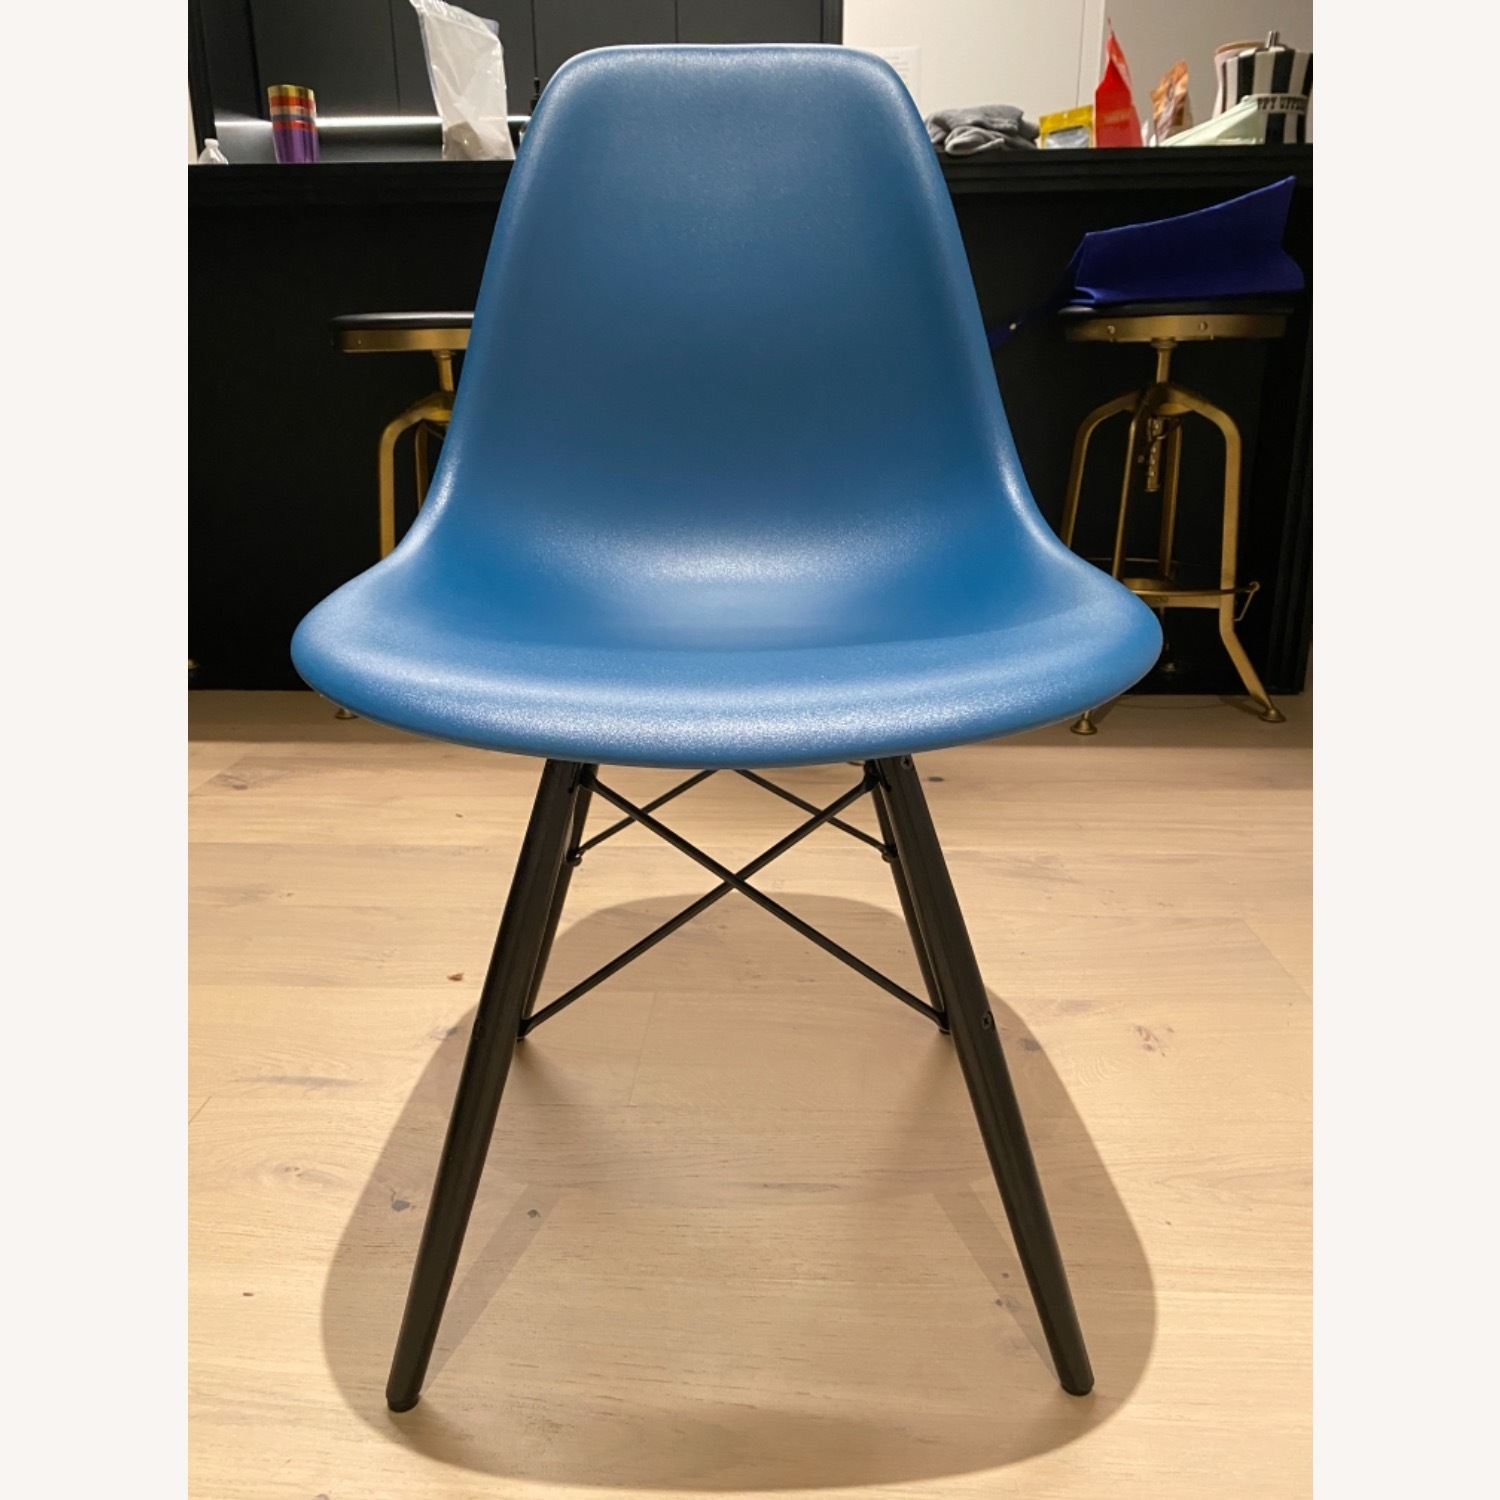 4 x Herman Miller Eames Molded Plastic Side Chair - image-5